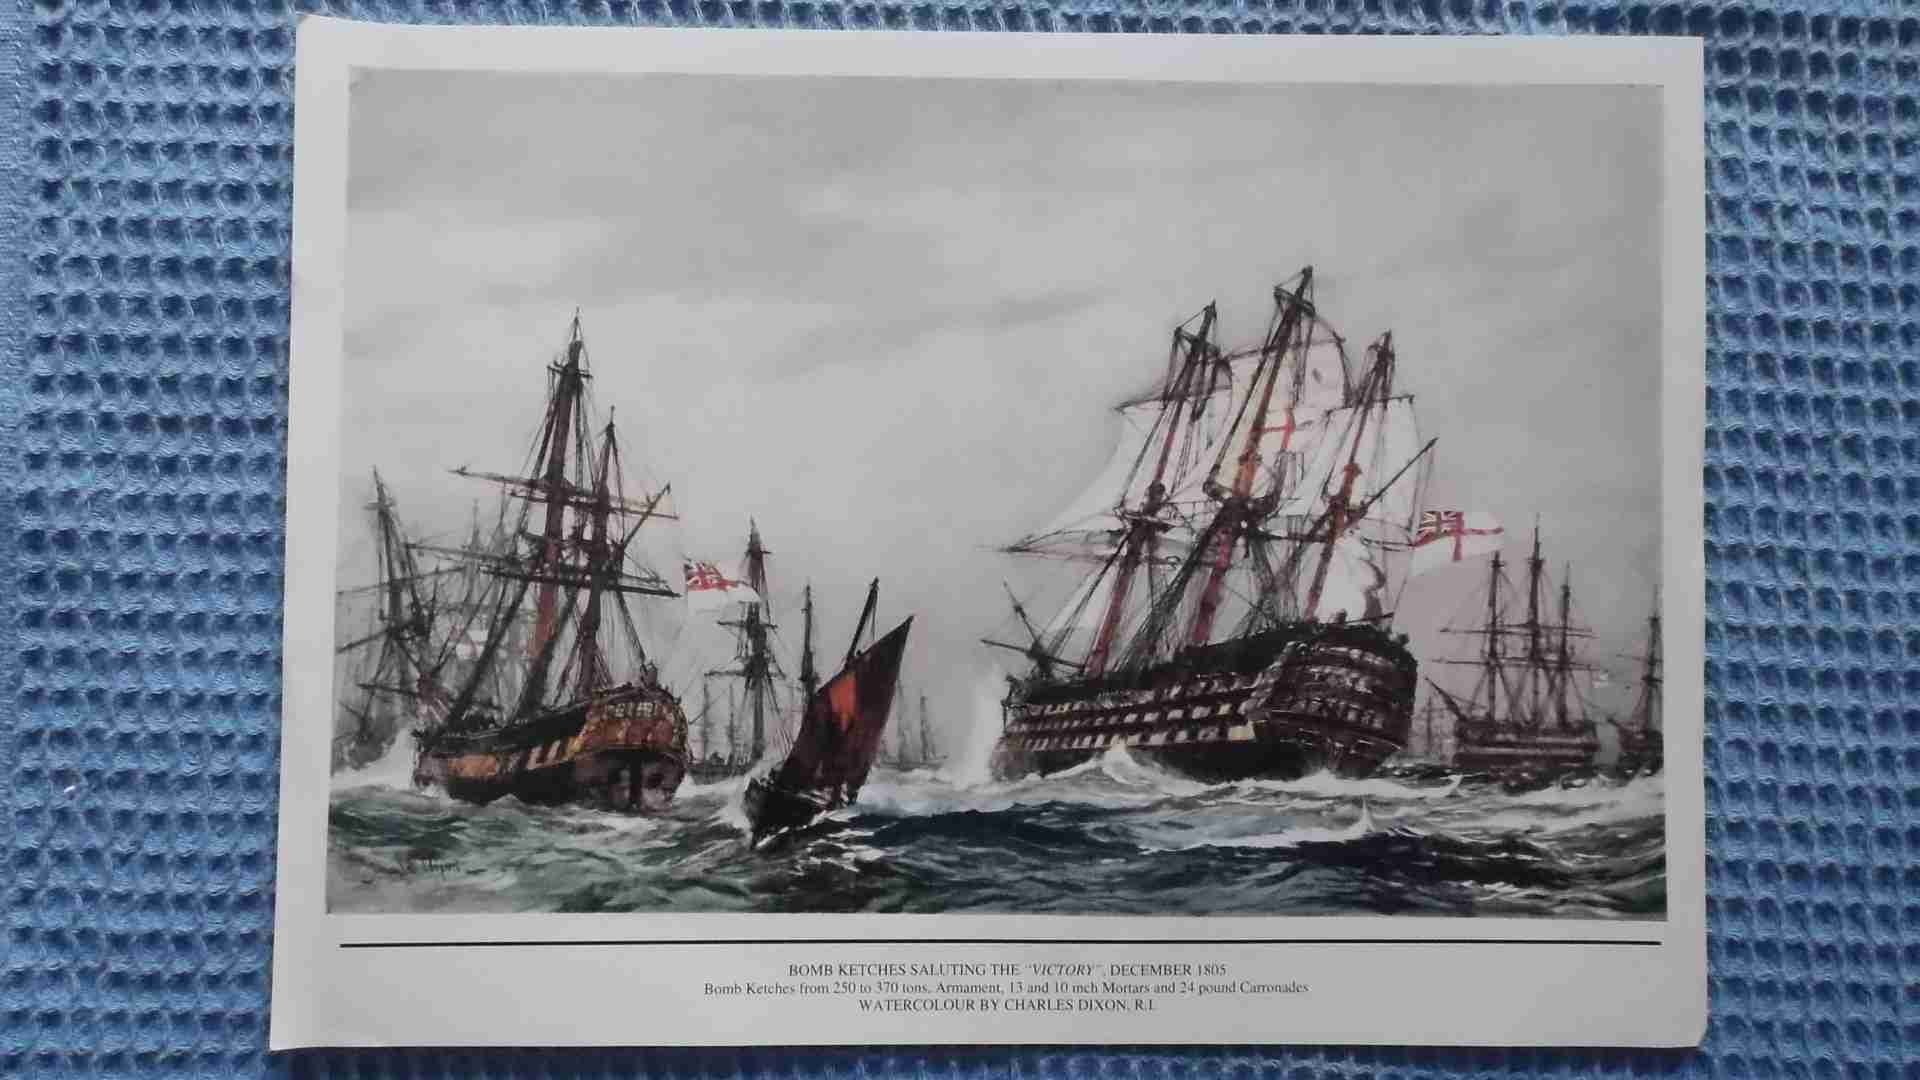 COPY OF A WATER COLOUR FROM CHARLES DIXON SHOWING THE FAMOUS BATTLE OF TRAFALGAR